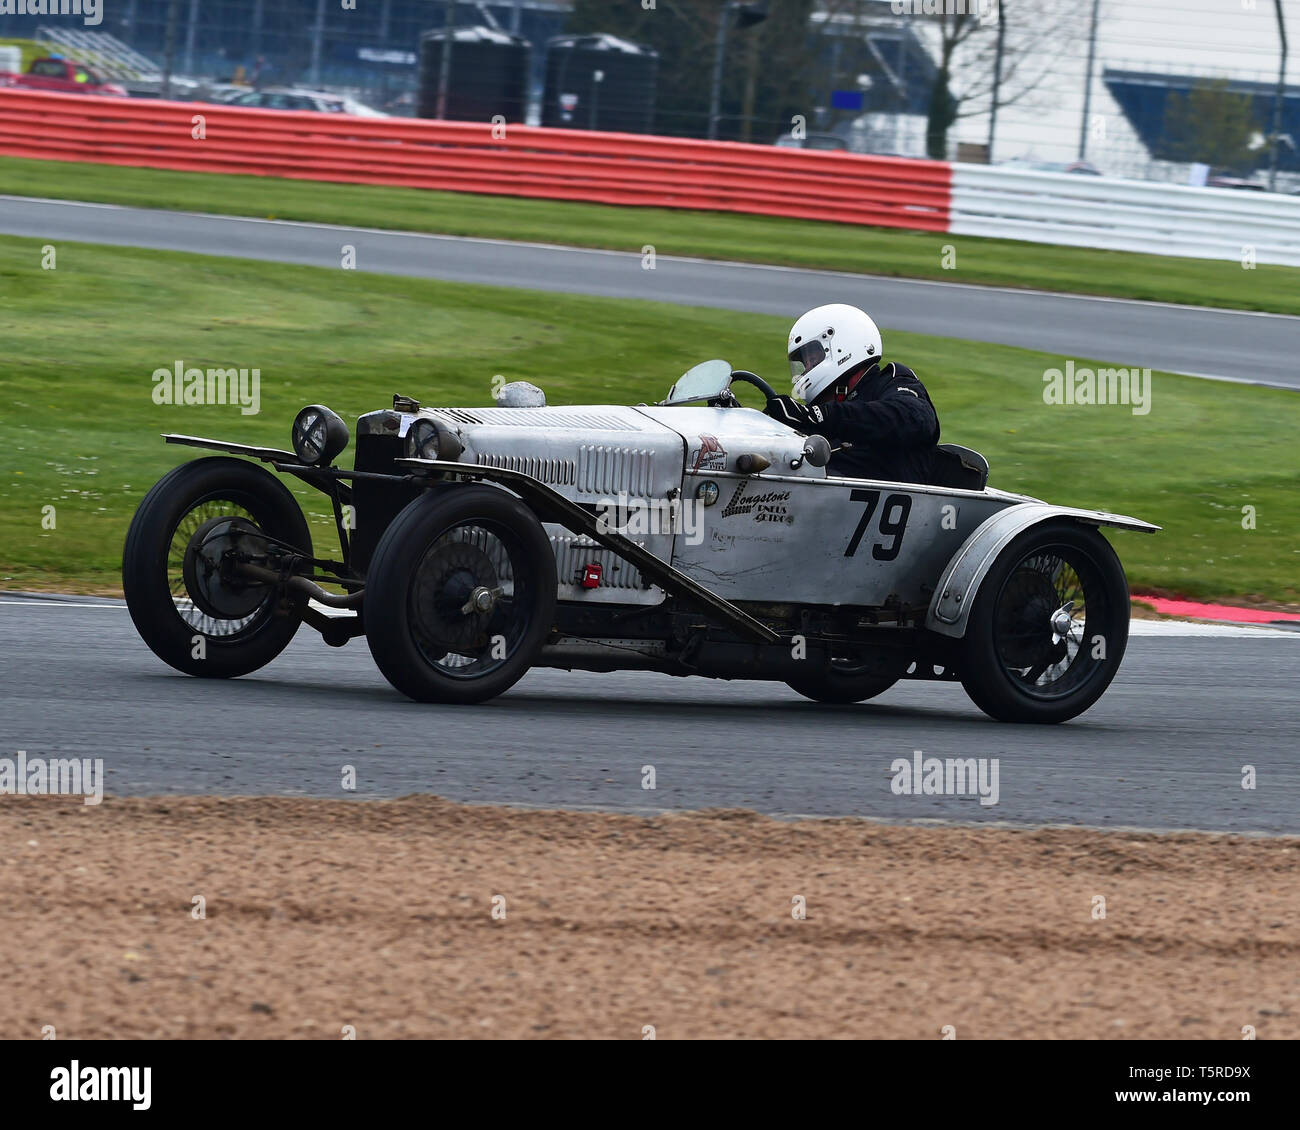 Doug Cawley, GN Ford Piglet, GP Italia and Lanchester Trophies Race, Vintage Racing Cars, VSCC, Formula Vintage, Silverstone, Northamptonshire, Englan - Stock Image